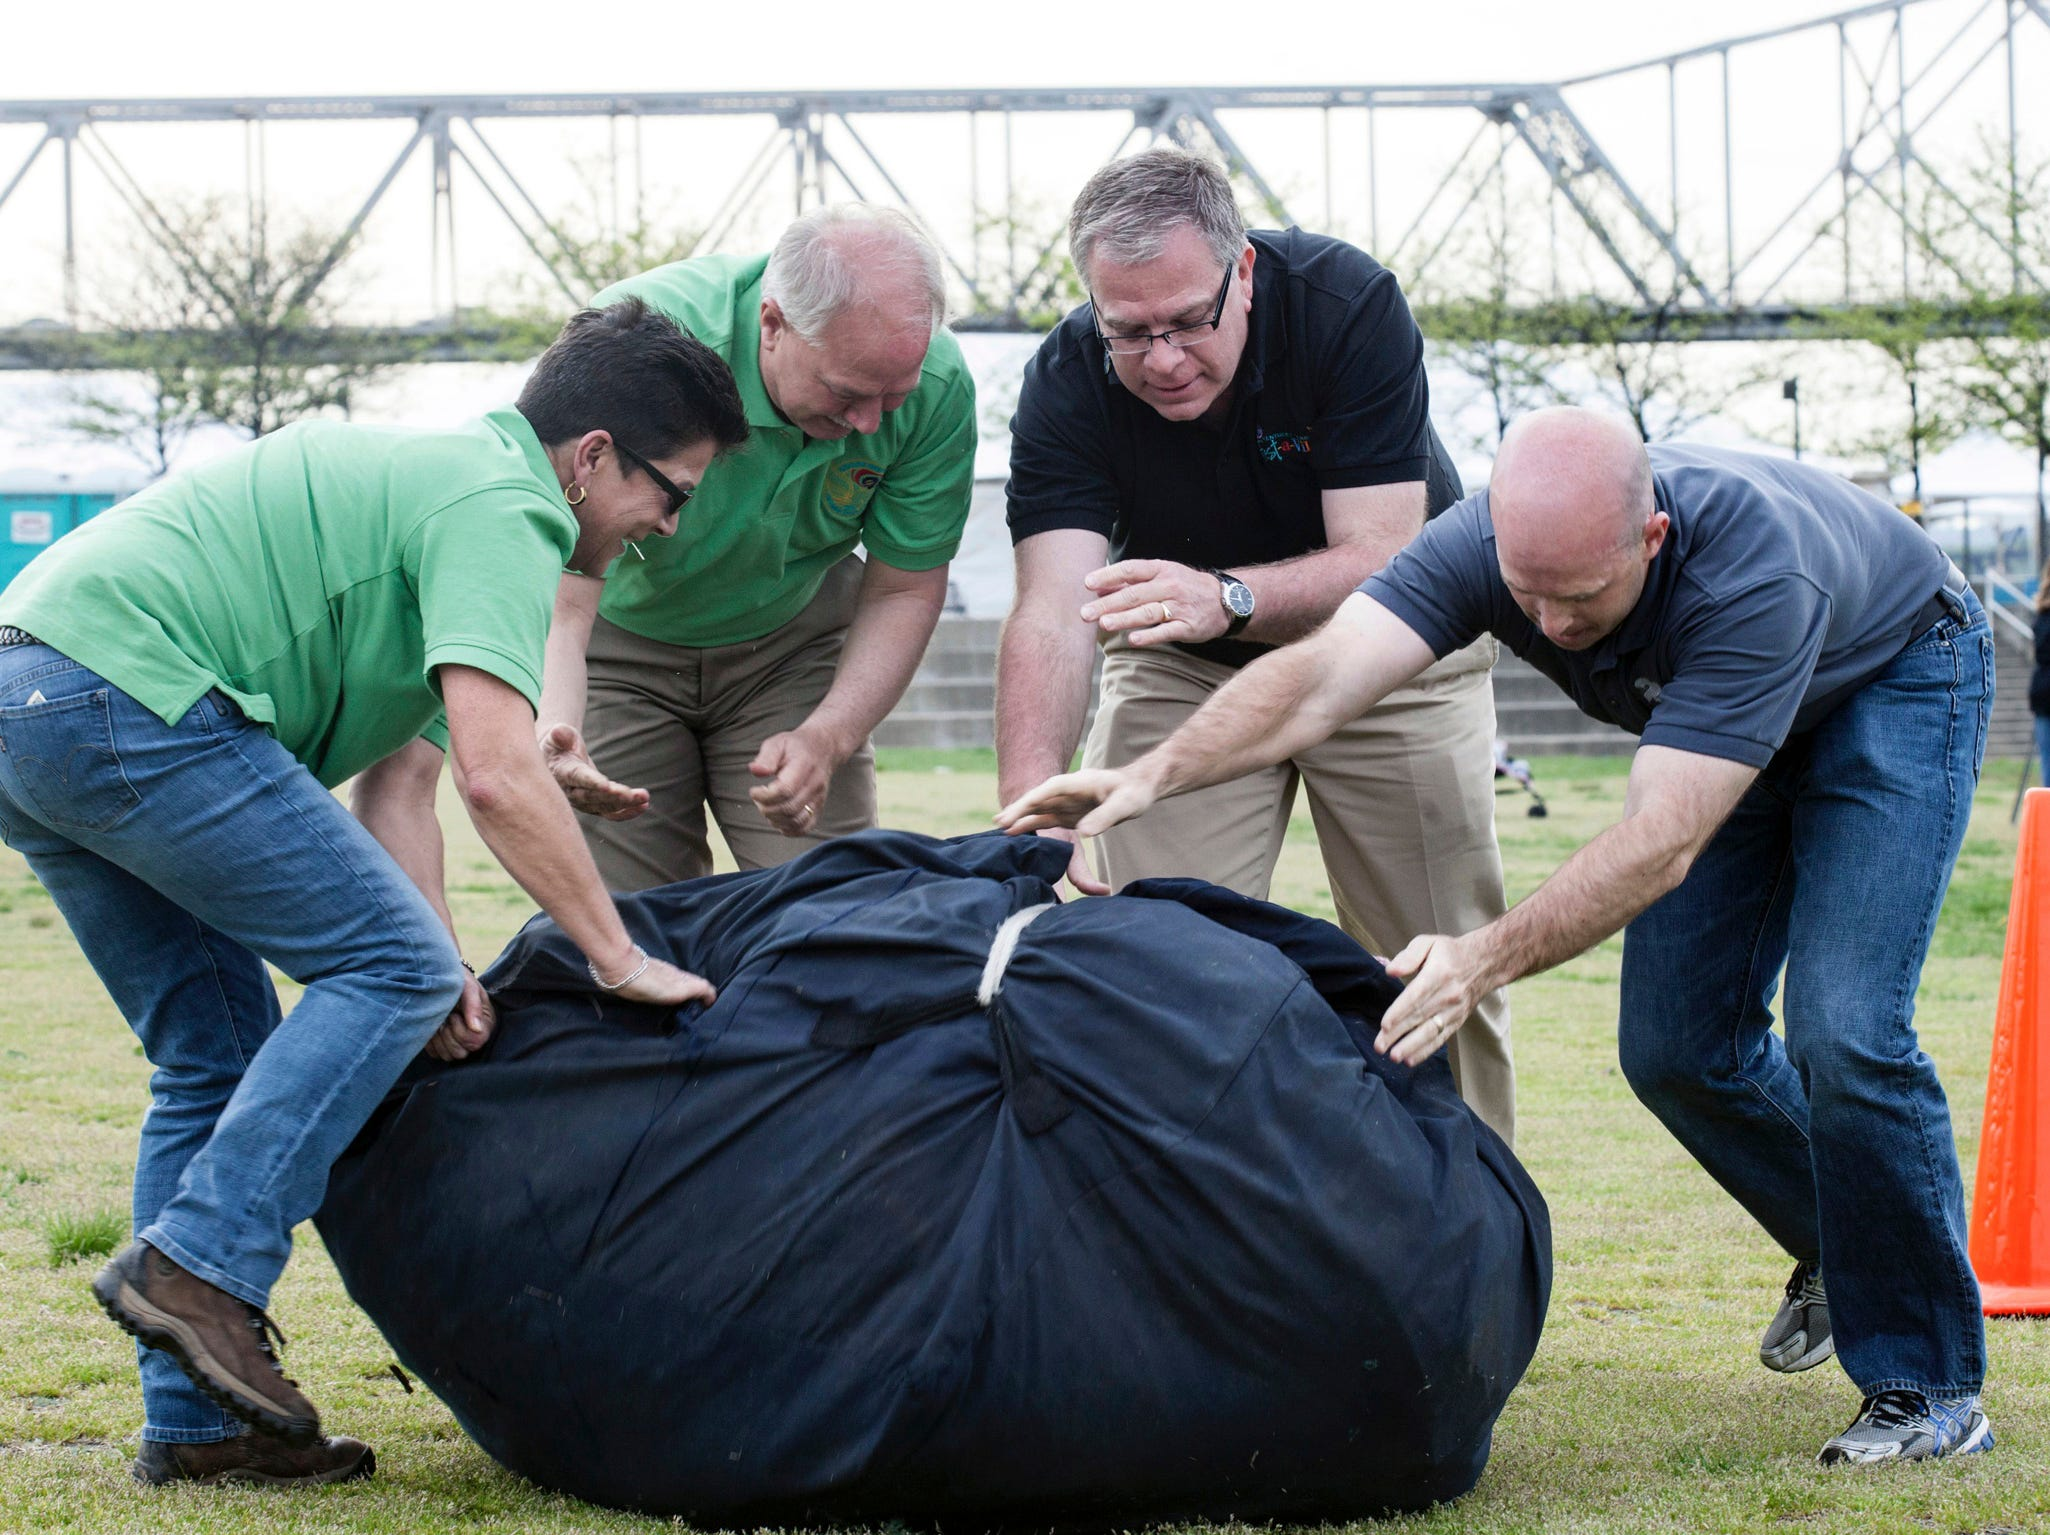 Left to right: Kentucky Derby Festival members Leslie Broecker, David Nett, Mike Berry and Jeff English complete the daunting task of pushing 225 pounds through a 75-foot obstacle course during the 2nd Annual Balloon Crew Challenge on the Waterfront Lawn Thursday night.  April 24, 2014